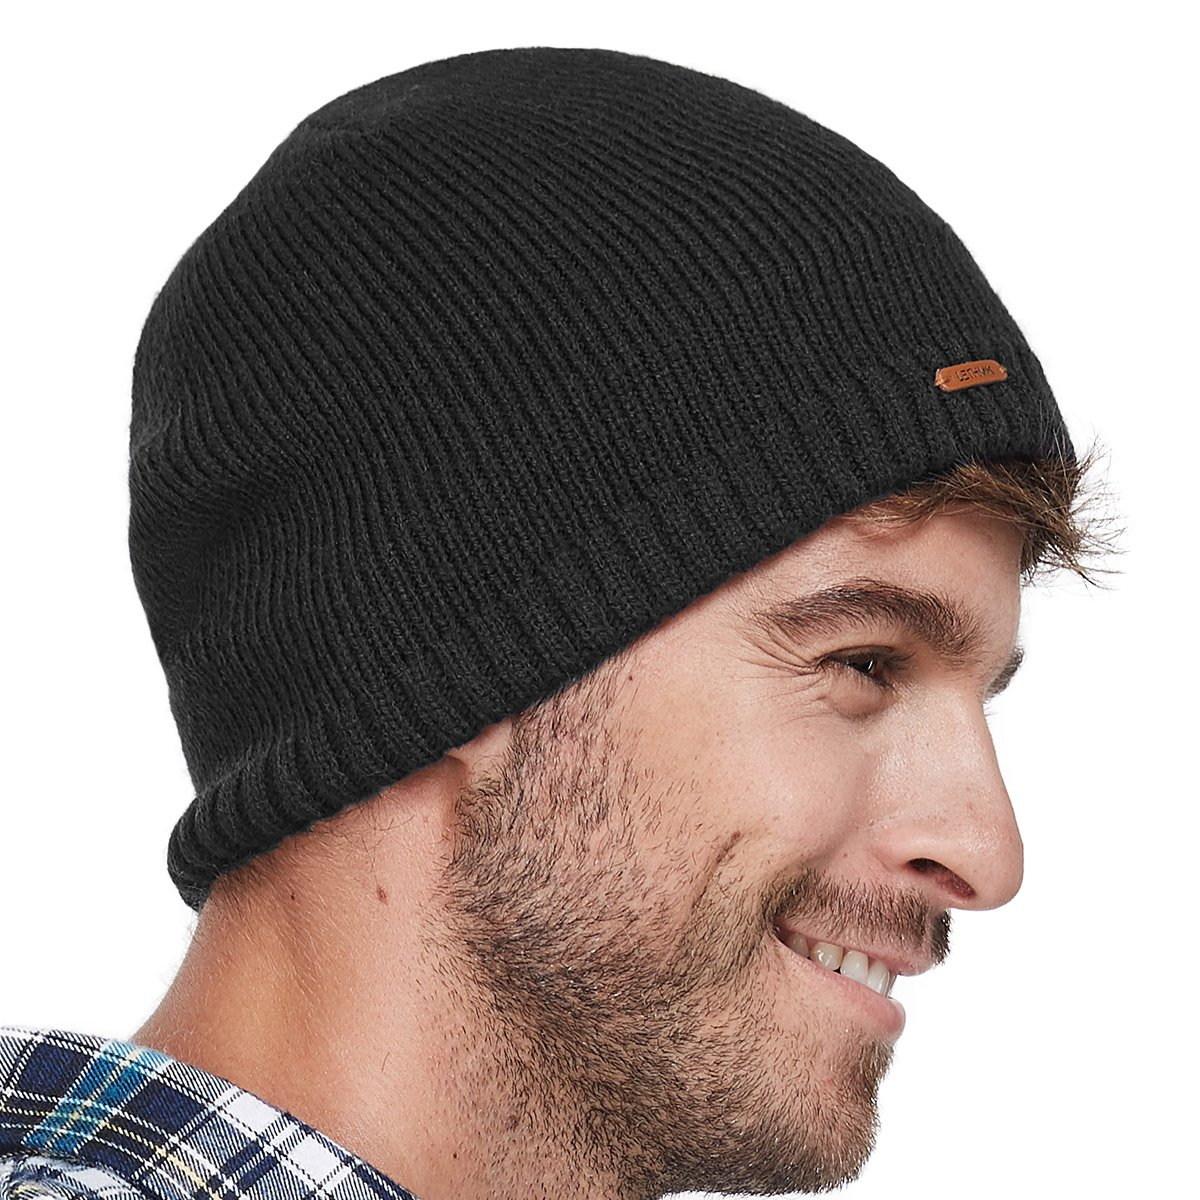 09f6f33a6d7 LETHMIK Fleece Lined Beanie Hat Mens Winter Solid Color Warm Knit Ski Skull  Cap Black at Amazon Men s Clothing store